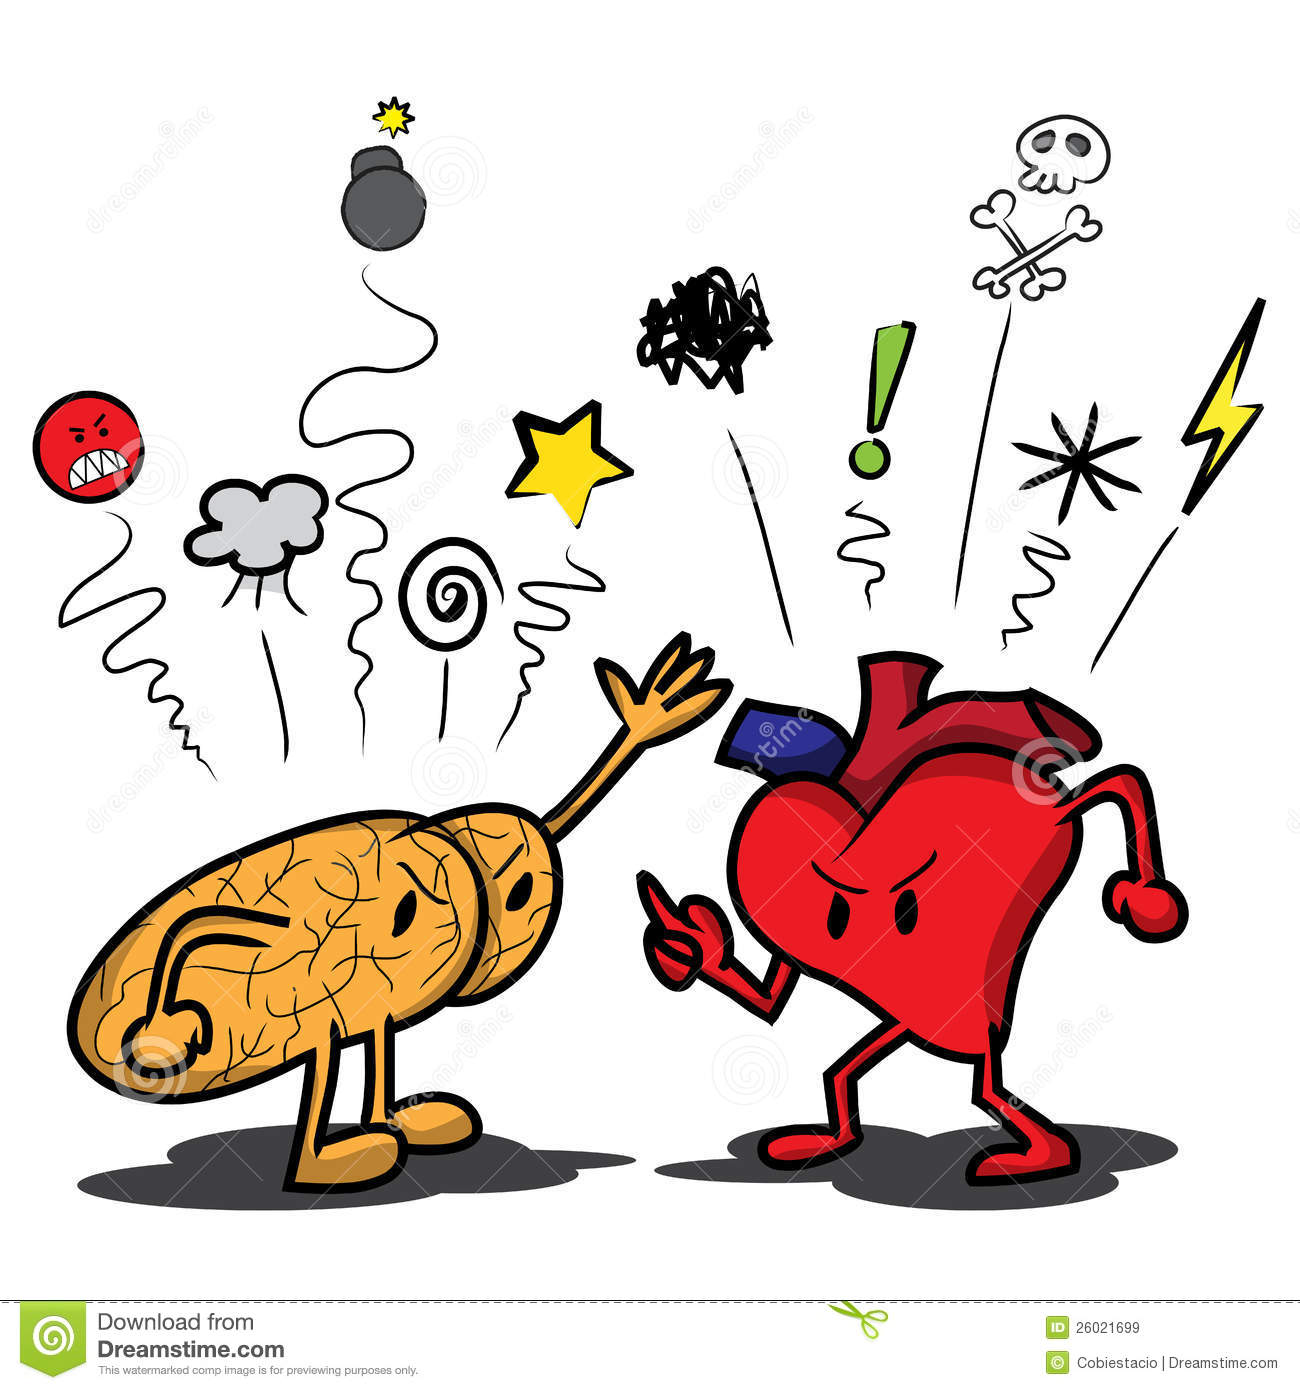 Image result for heart and brain fighting cartoon